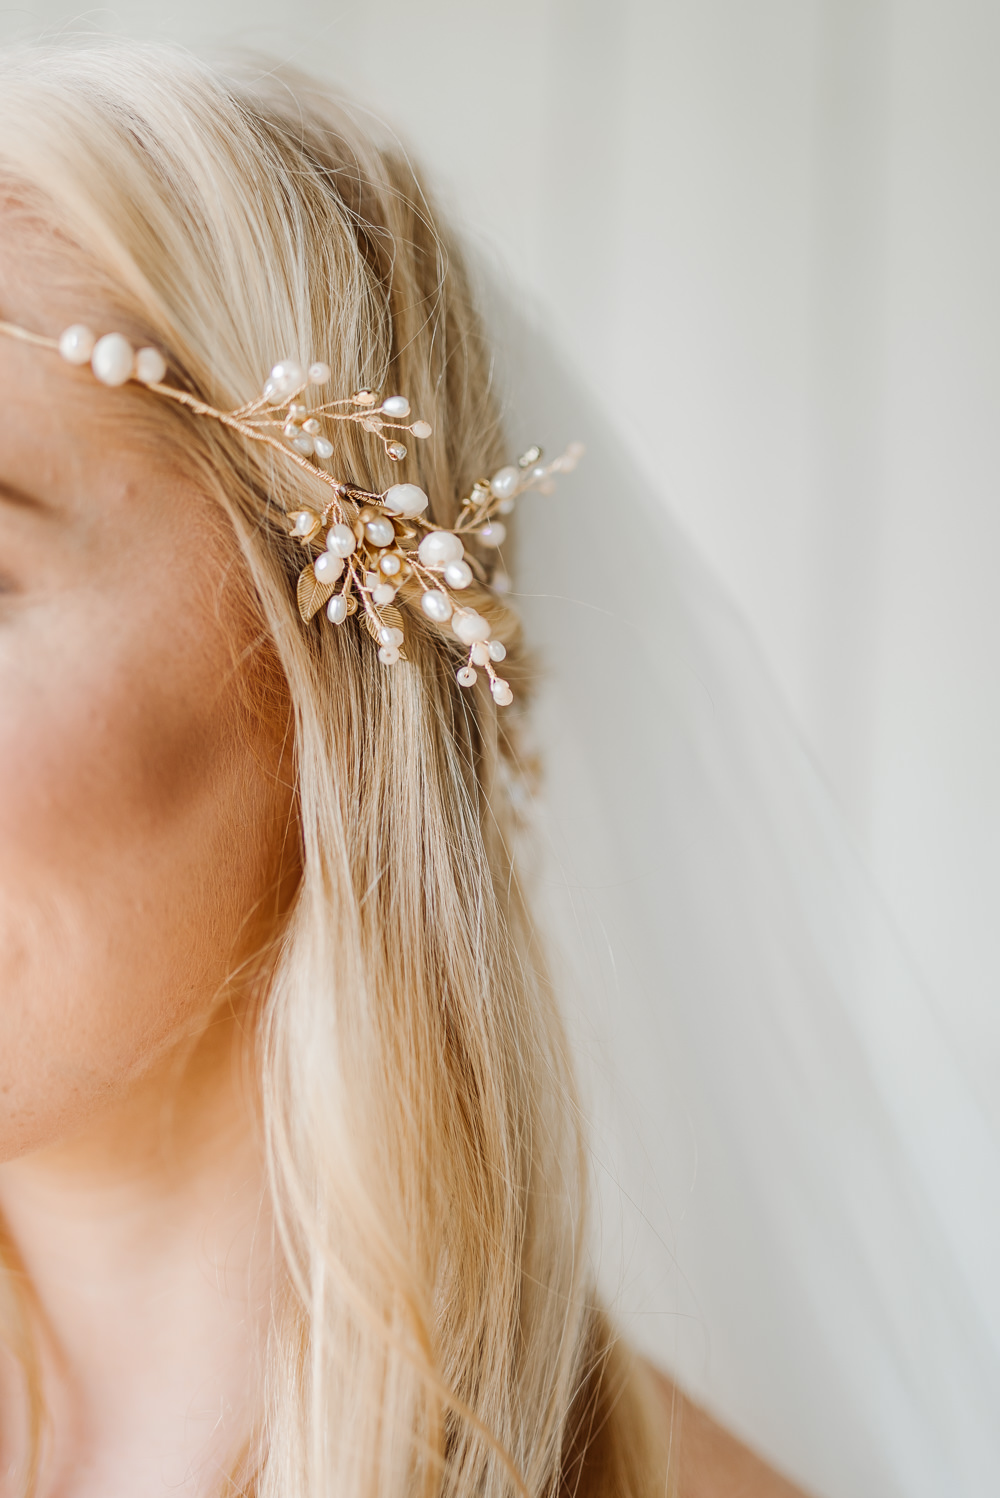 Haor Bride Bridal Accessory Gold Delicate Hairpiece Grey Violet Wedding Ideas Chloe Ely Photography